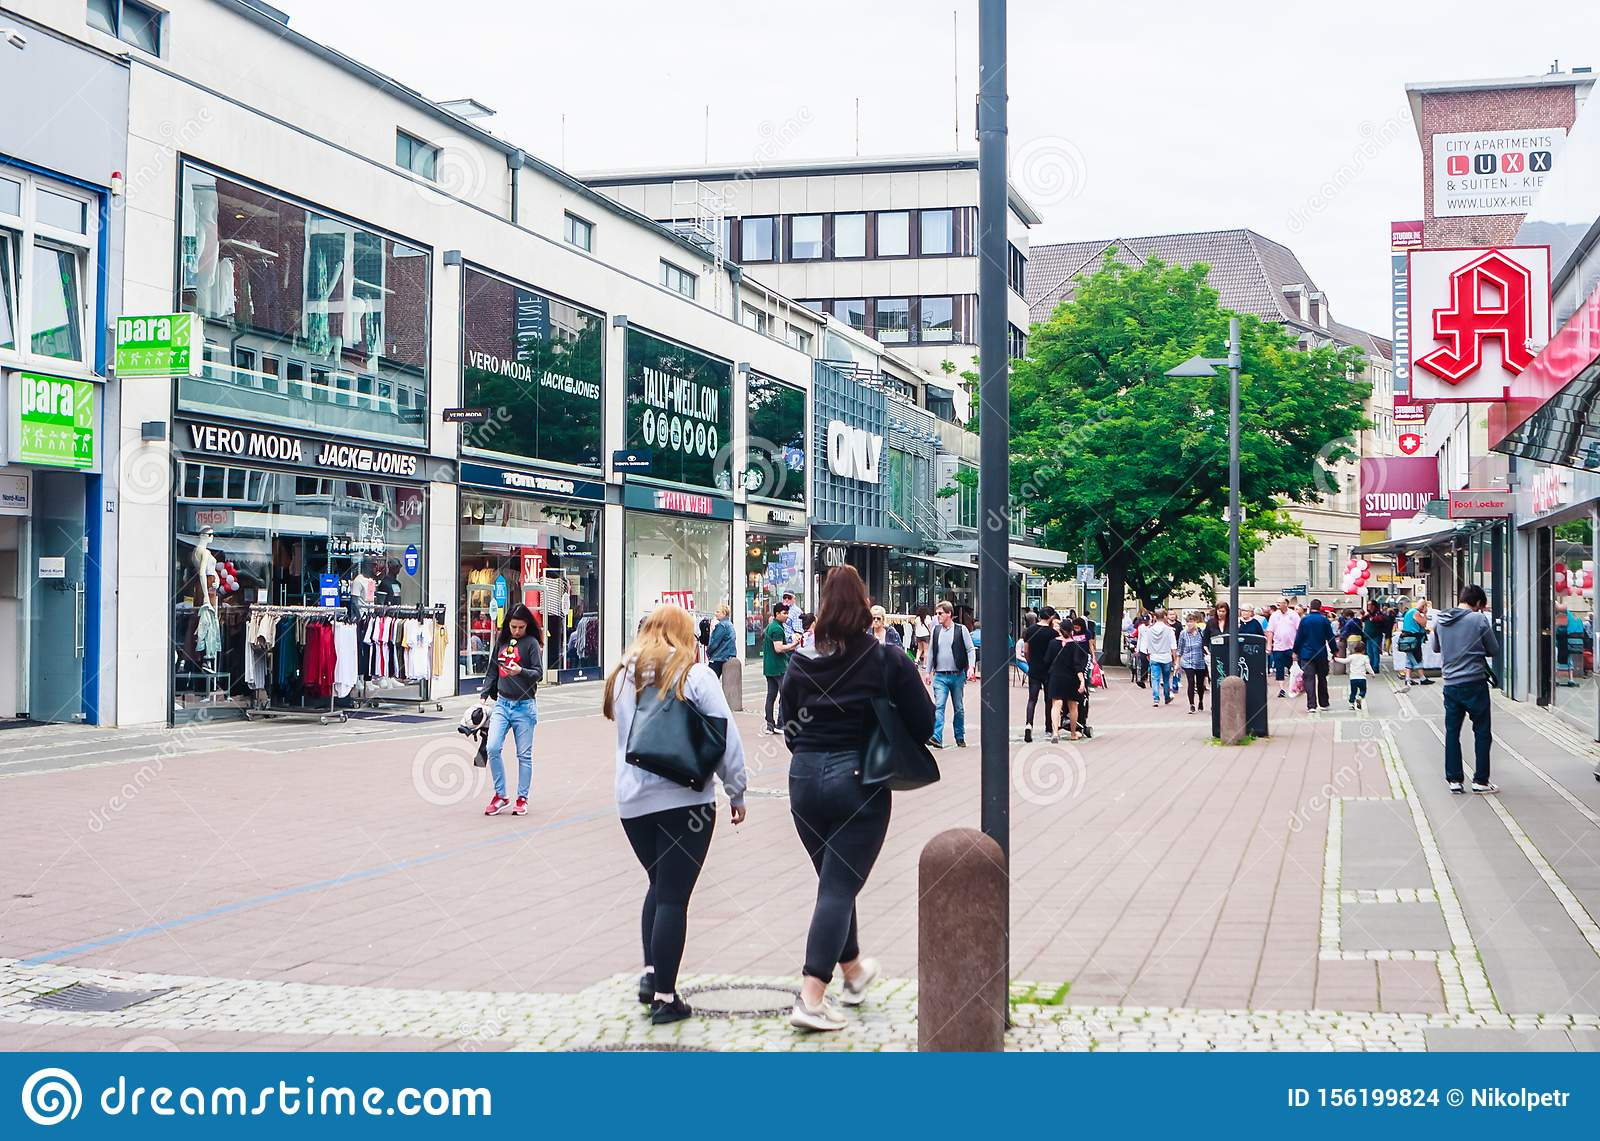 View Of Kiel City Centre And Main Shopping Precinct Schleswig Holstein Germany Editorial Stock Image Image Of Precinct Mysterious 156199824